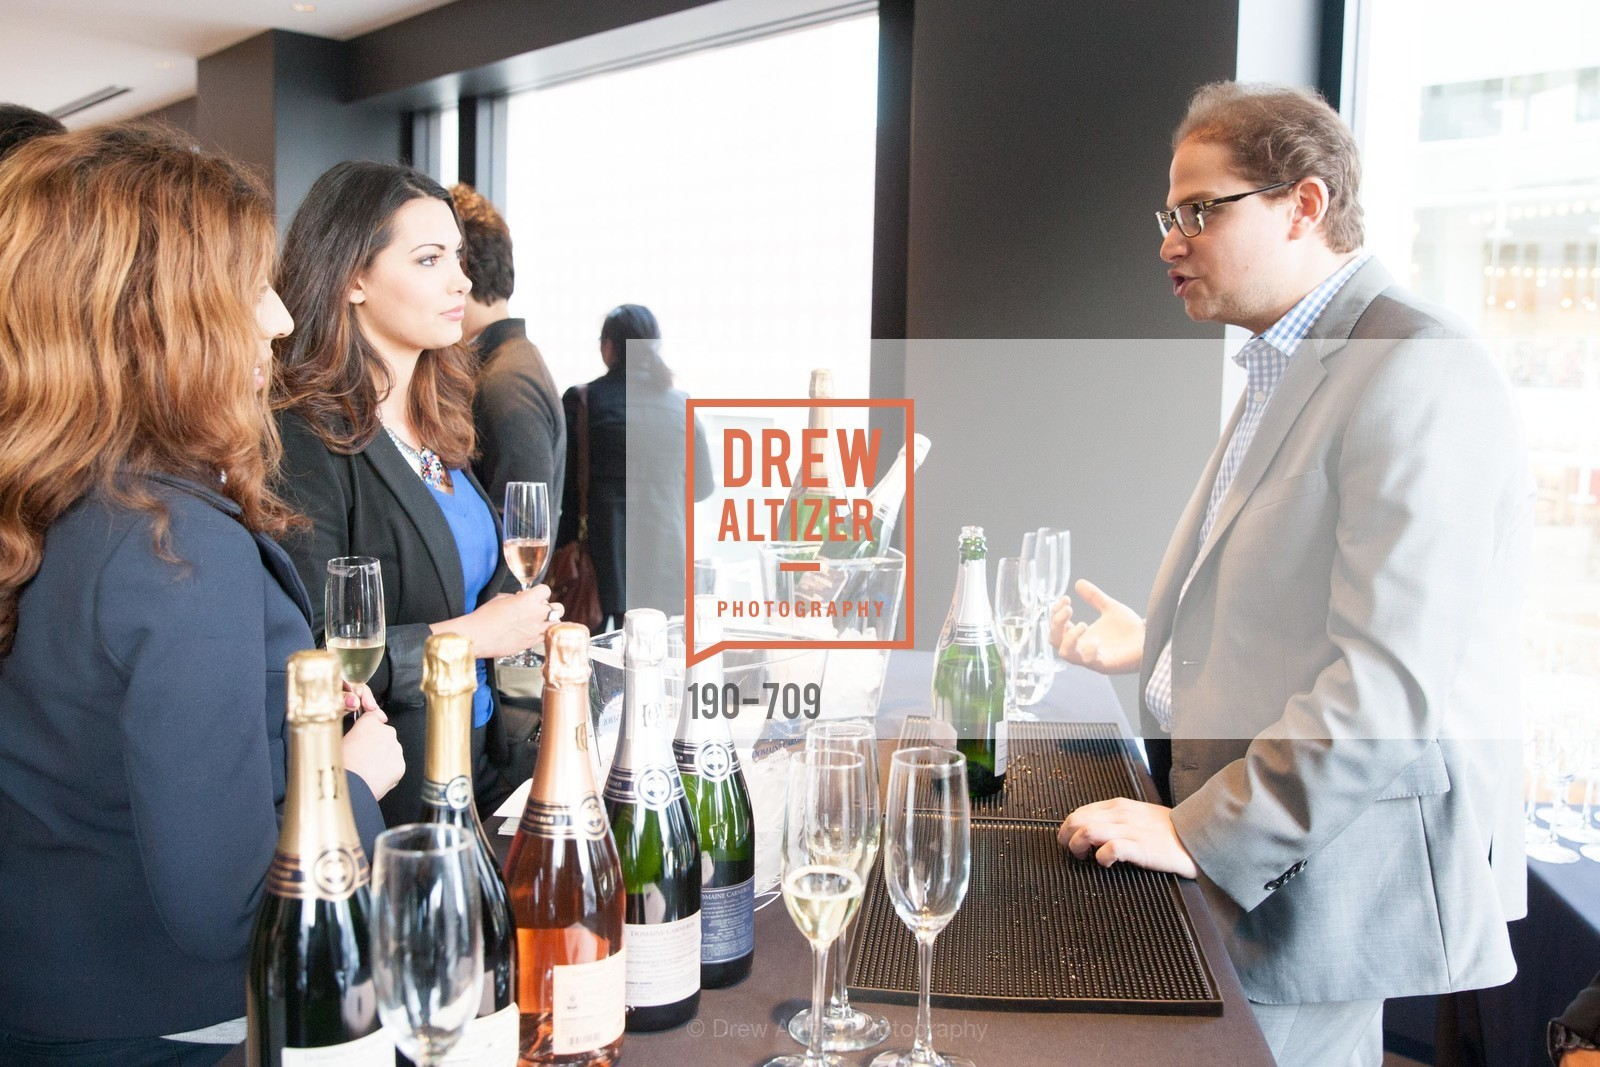 Extras, VERA WANG Spring Collection Preview with DOMAINE CARNEROS WINES, May 7th, 2015, Photo,Drew Altizer, Drew Altizer Photography, full-service agency, private events, San Francisco photographer, photographer california